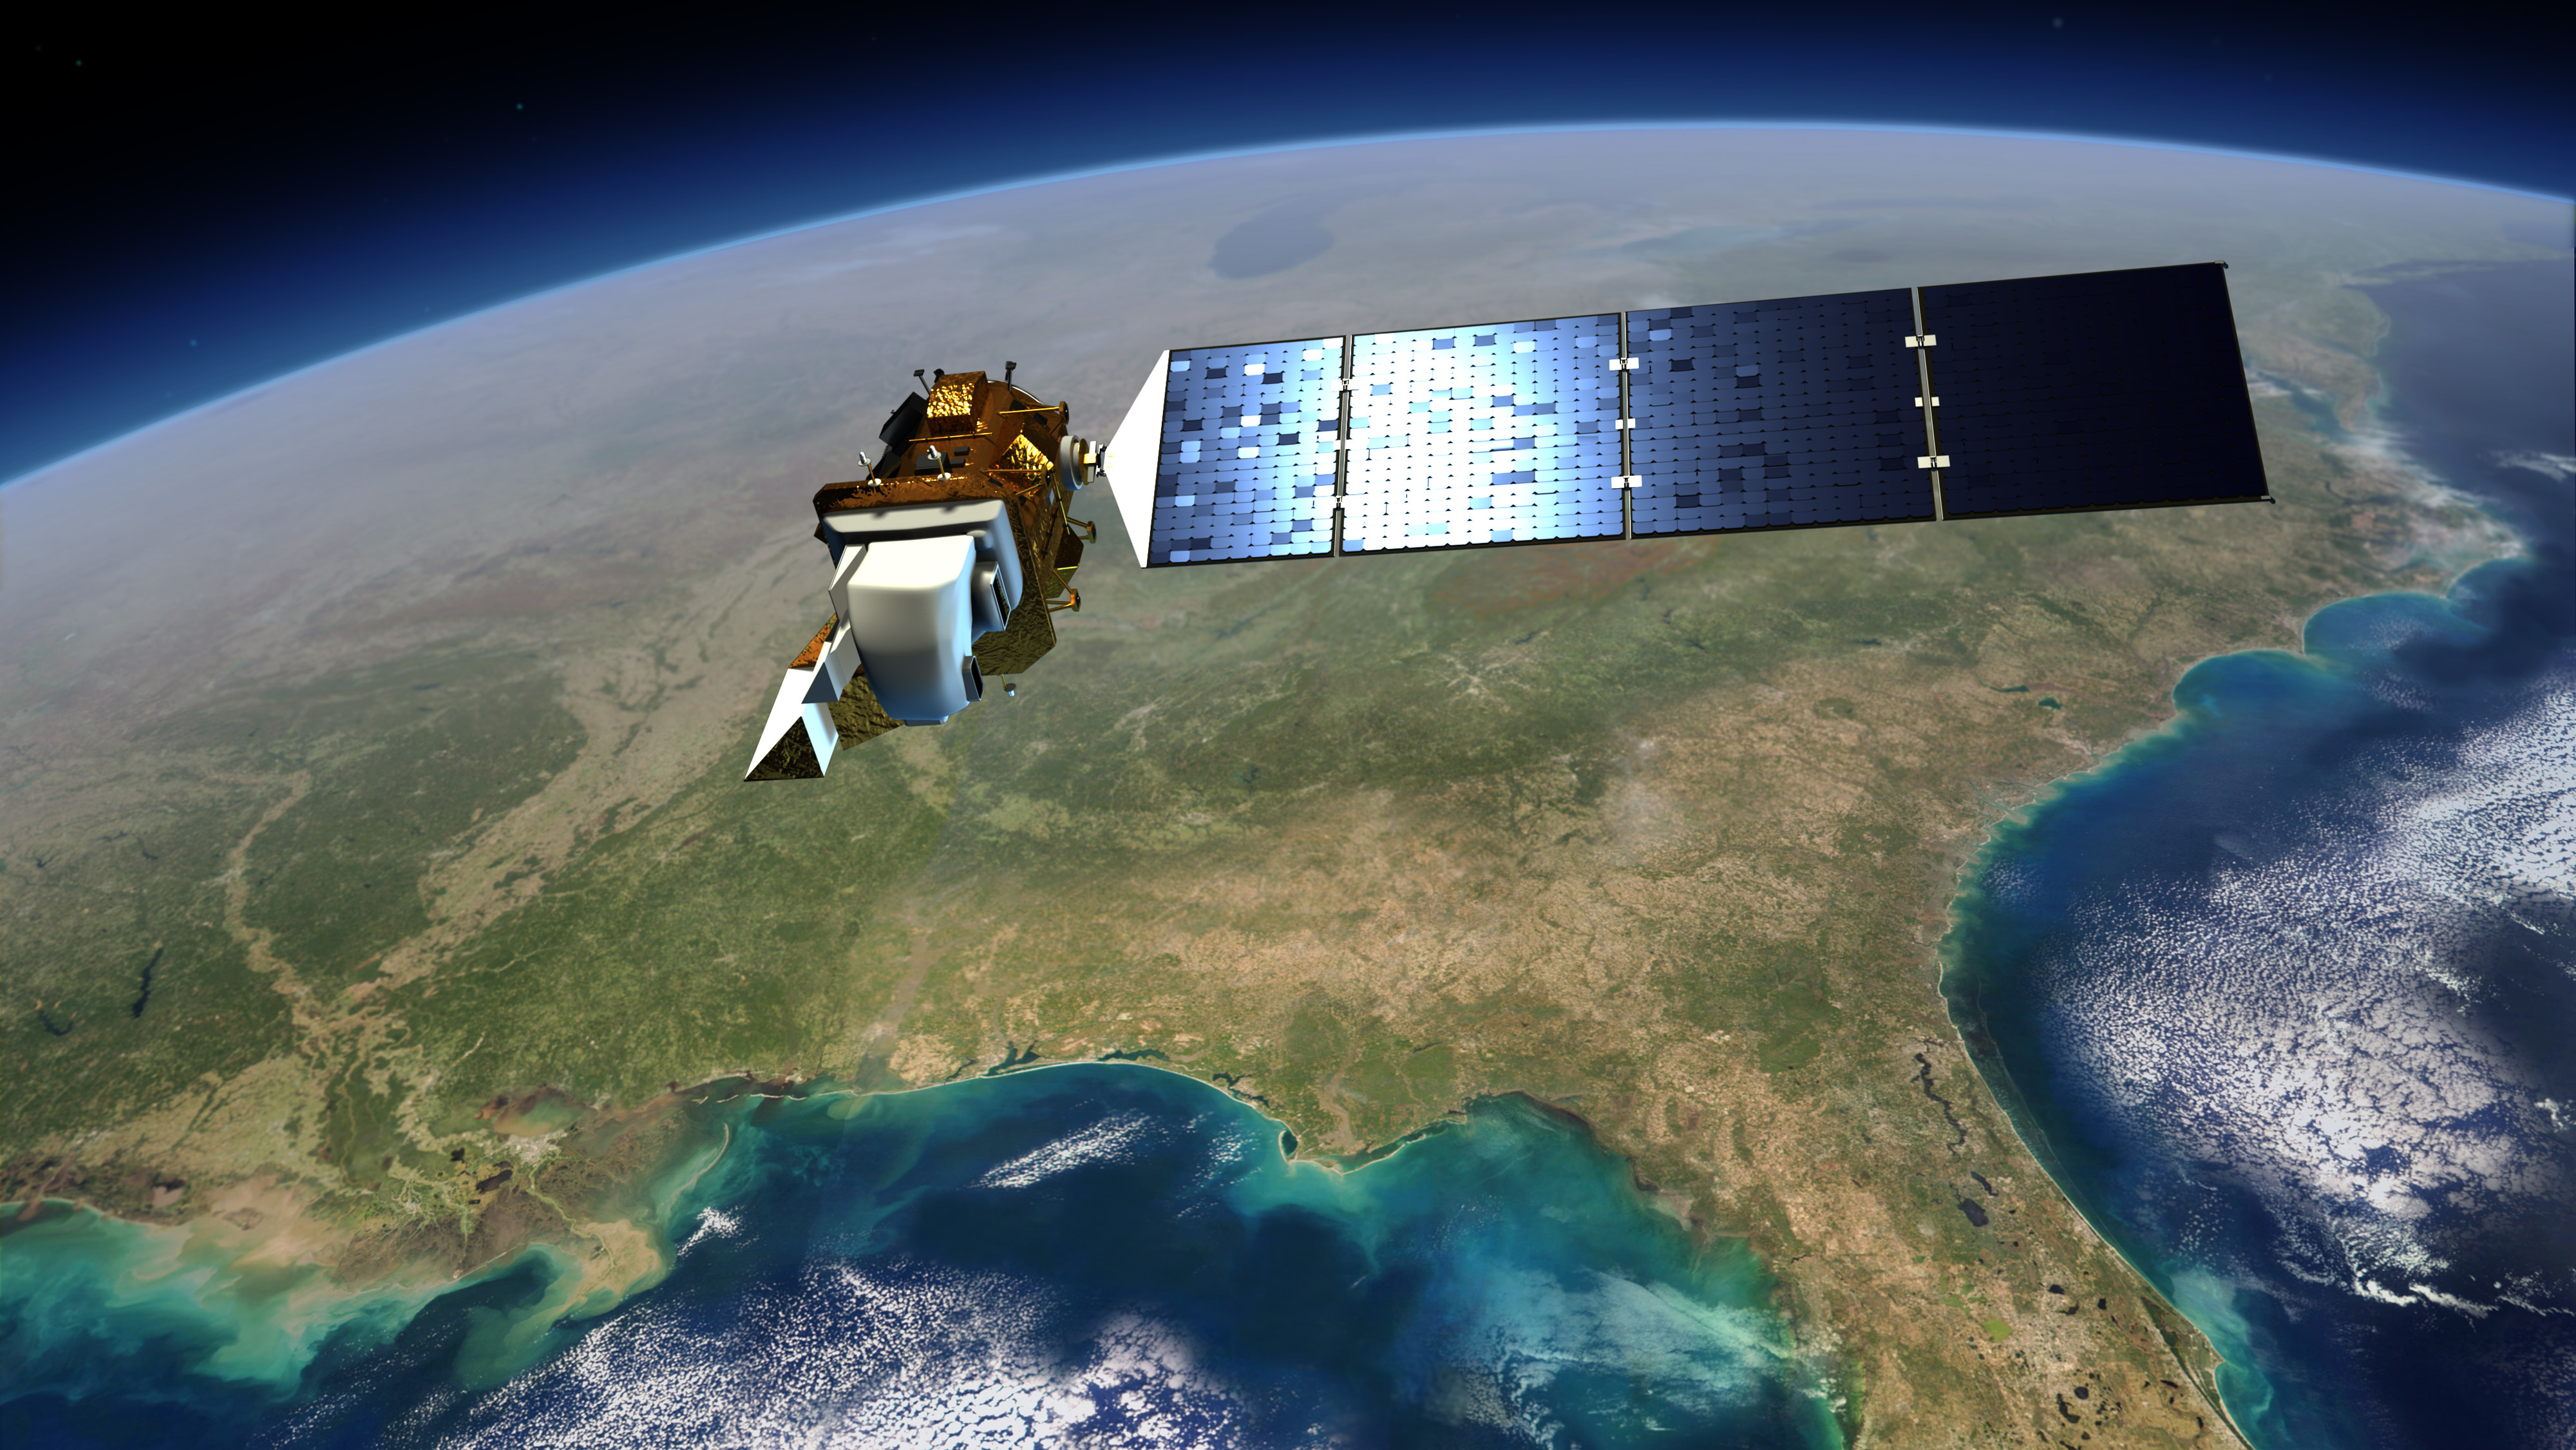 Landsat 8 is one of the few satellites in orbit with a sensor for monitoring water surface temperature.